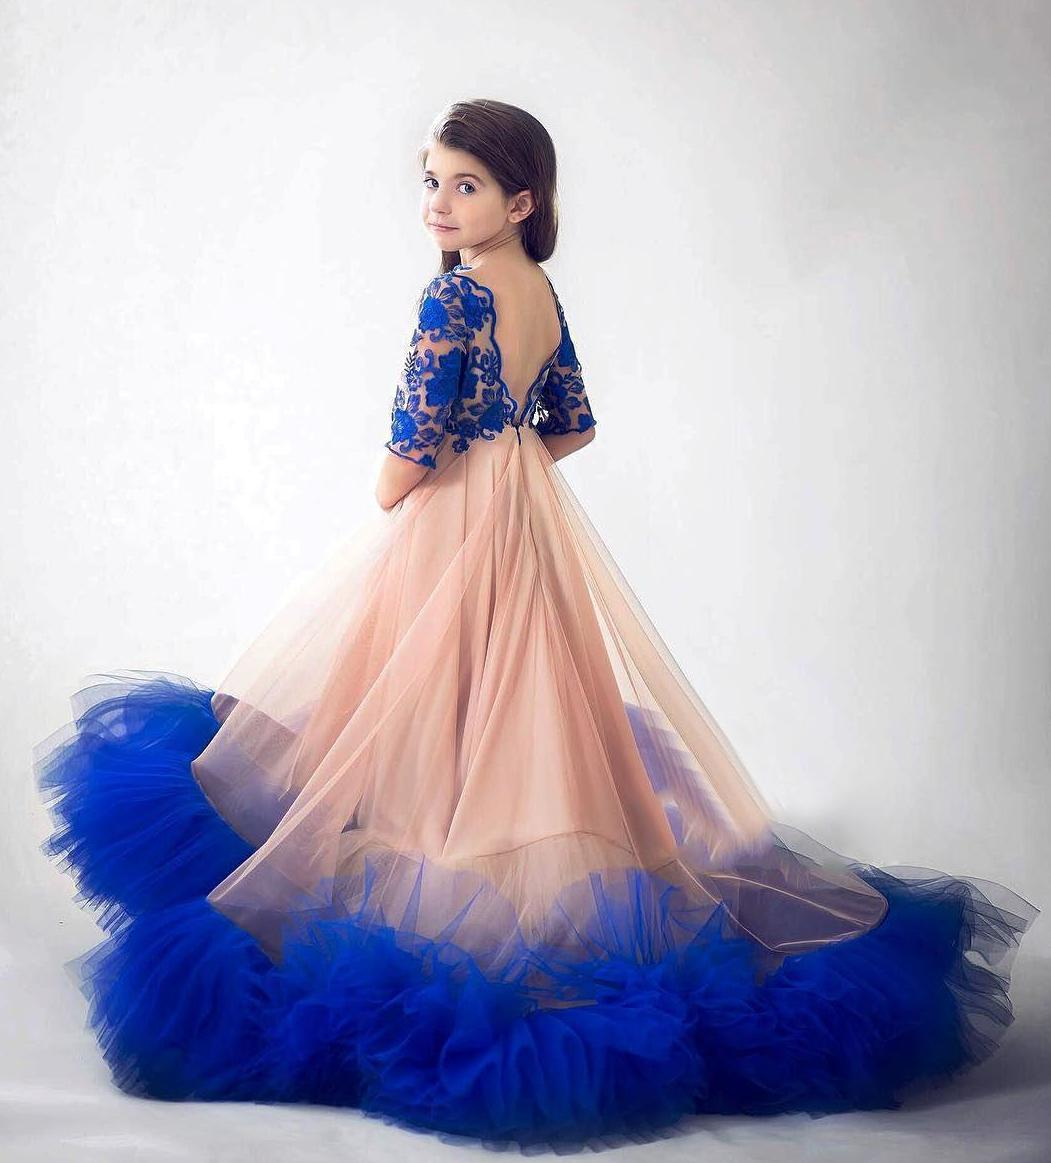 Royal Blue A Line 2020 Girls Pageant Dresses Lace Half Sleeves Flower Girls Princess Dress Formal Birthday Party Wear